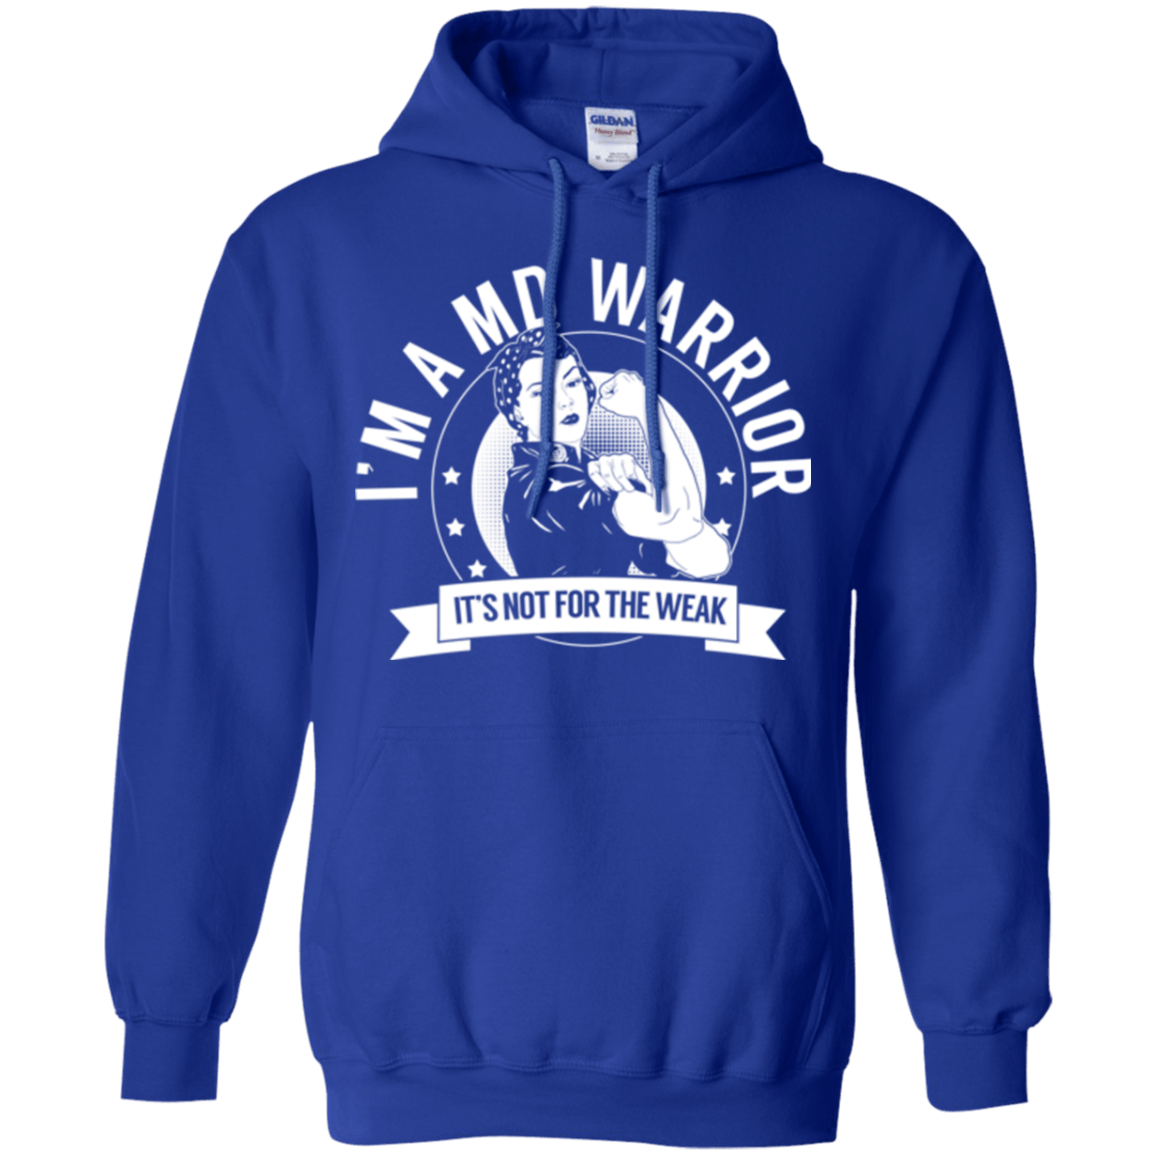 Muscular Dystrophy - MD Warrior Not For The Weak Pullover Hoodie 8 oz. - The Unchargeables